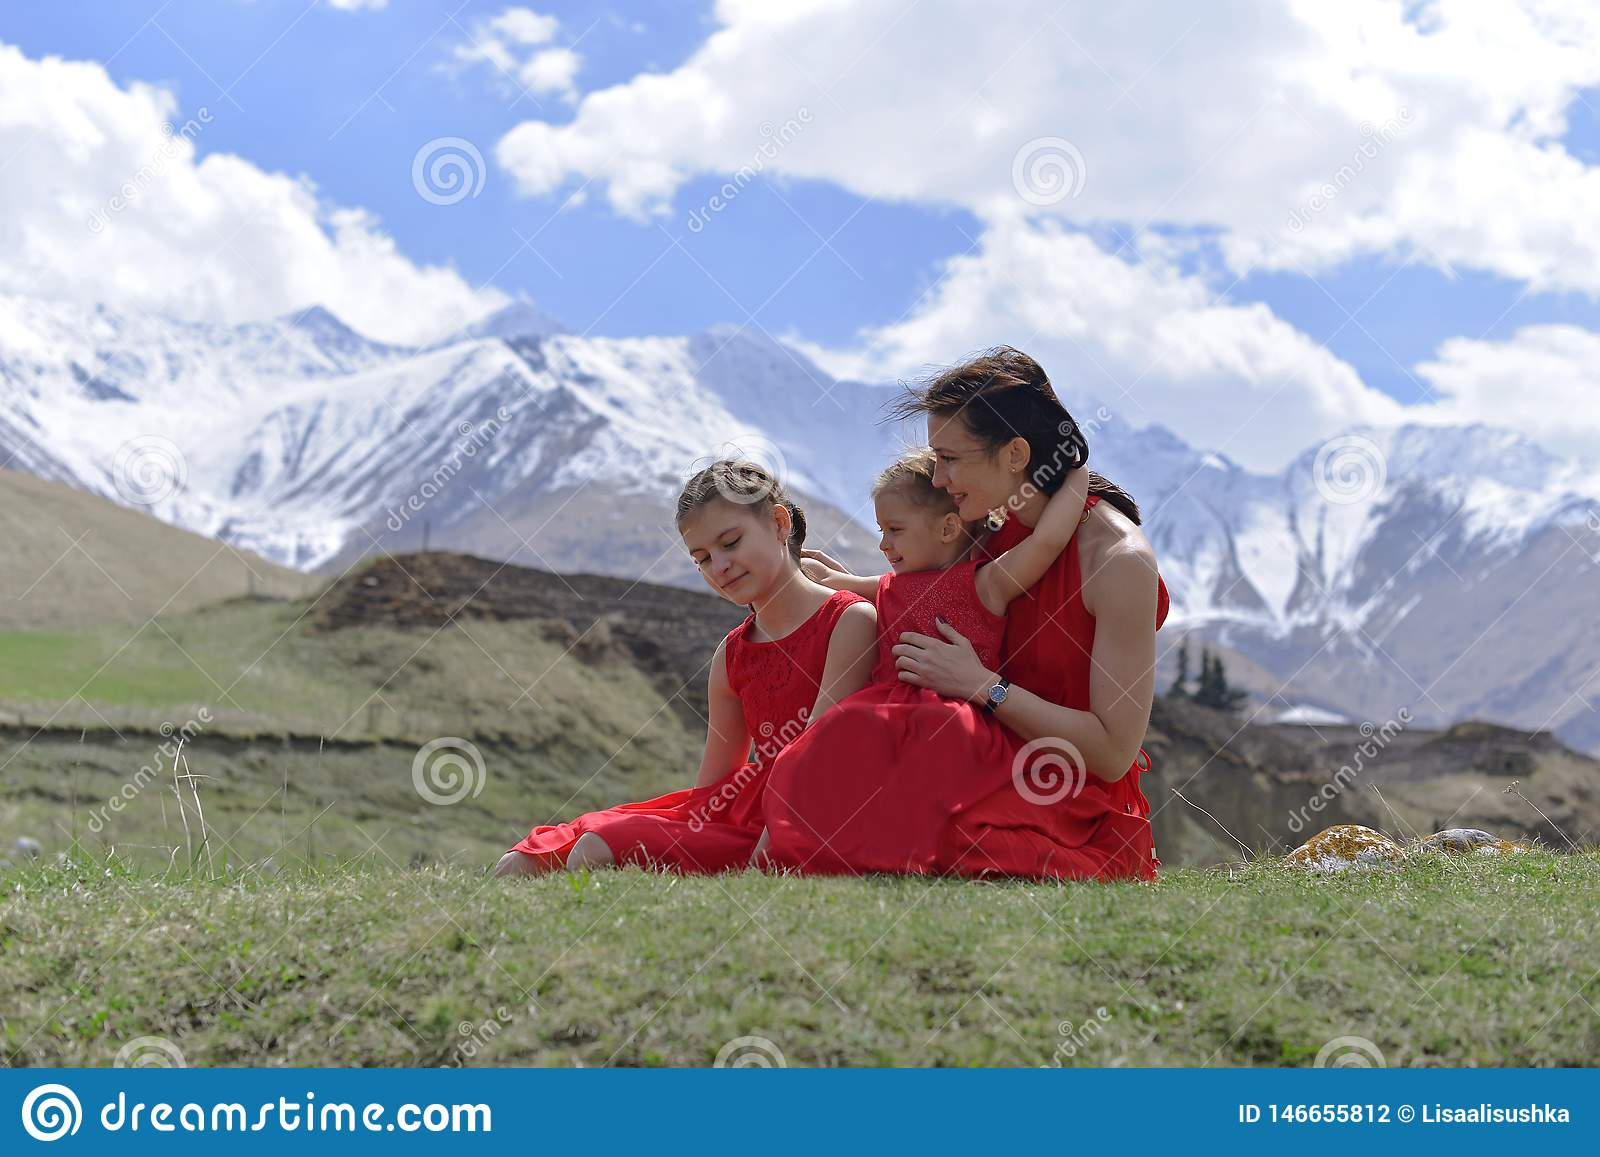 A young woman with two daughters in red dresses resting in the snow-capped mountains in the spring.